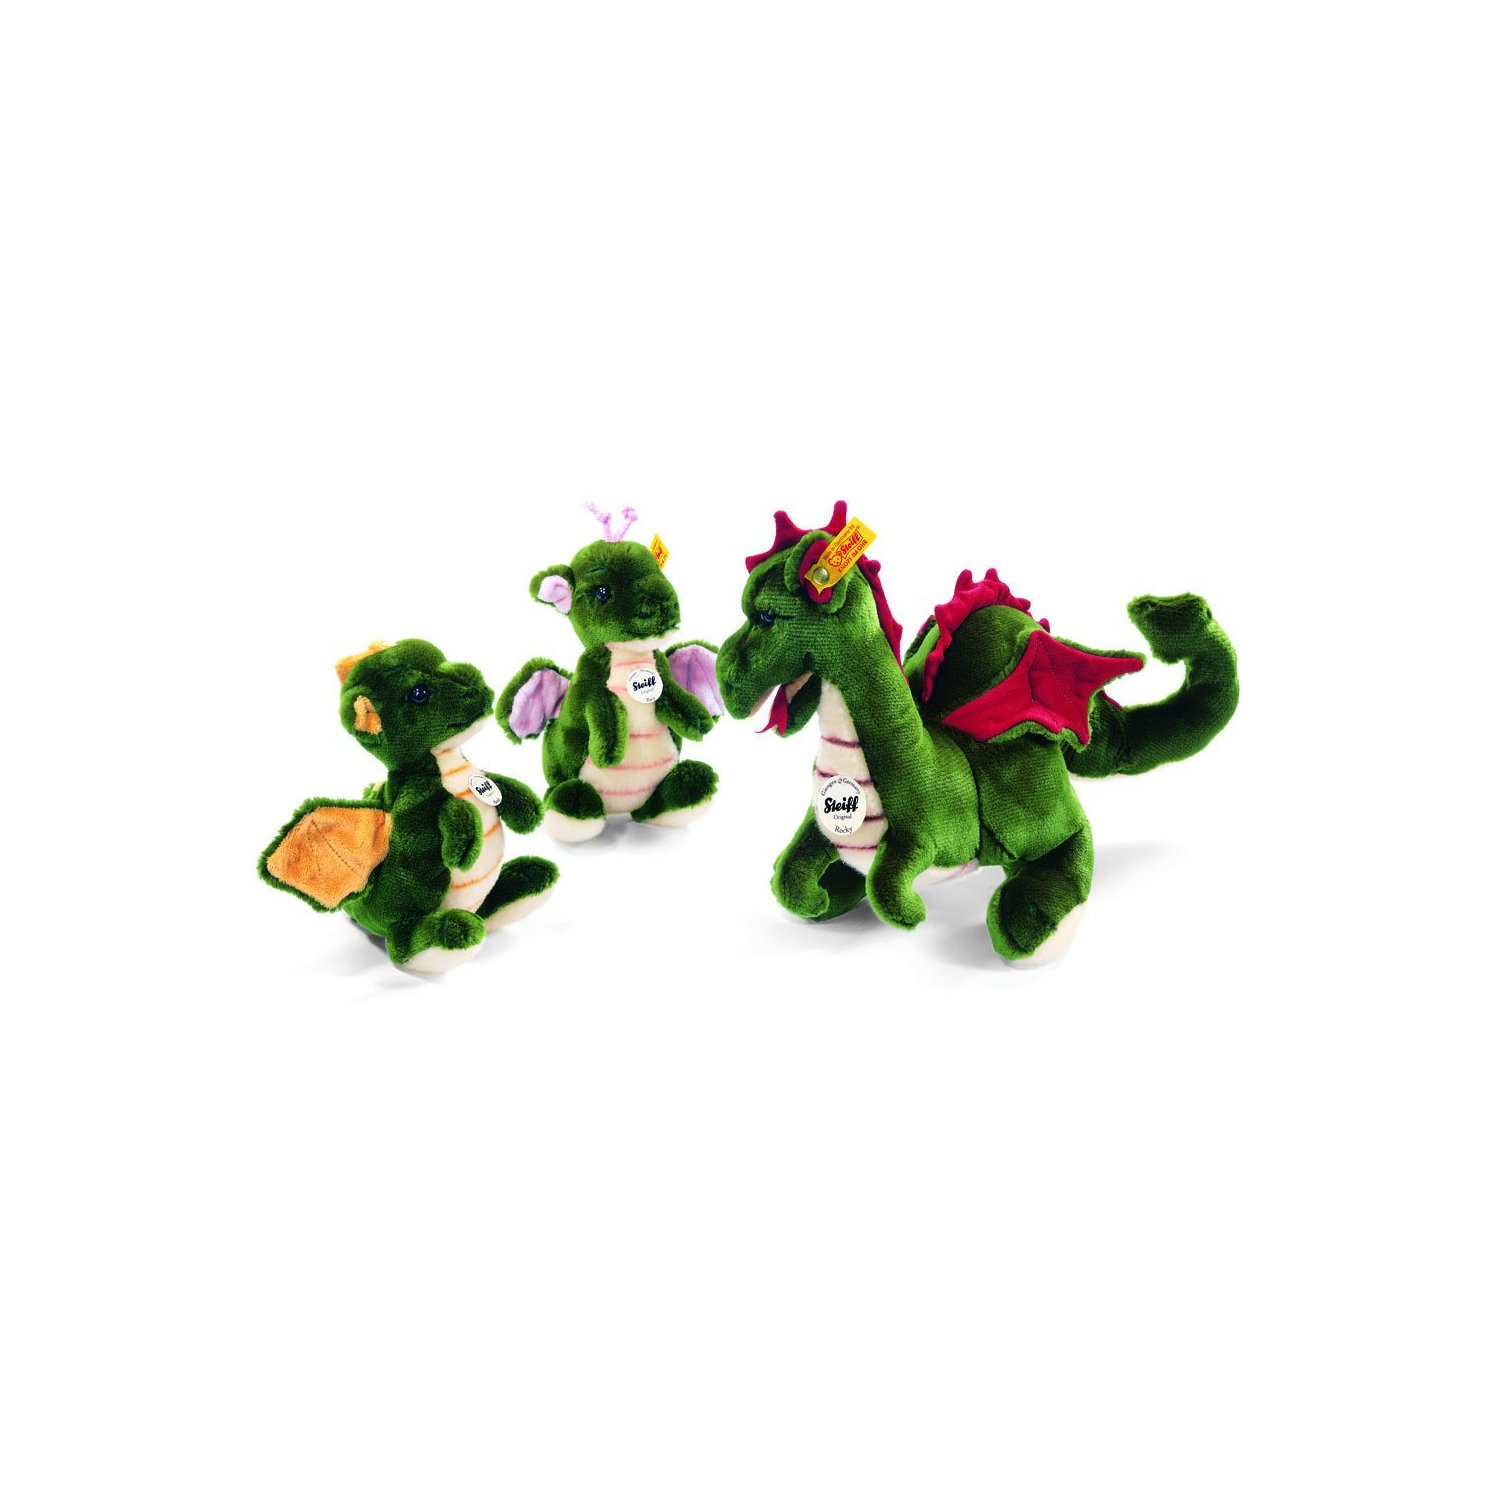 Steiff Soft and Cuddly Dragon Toys Dragons for Kids